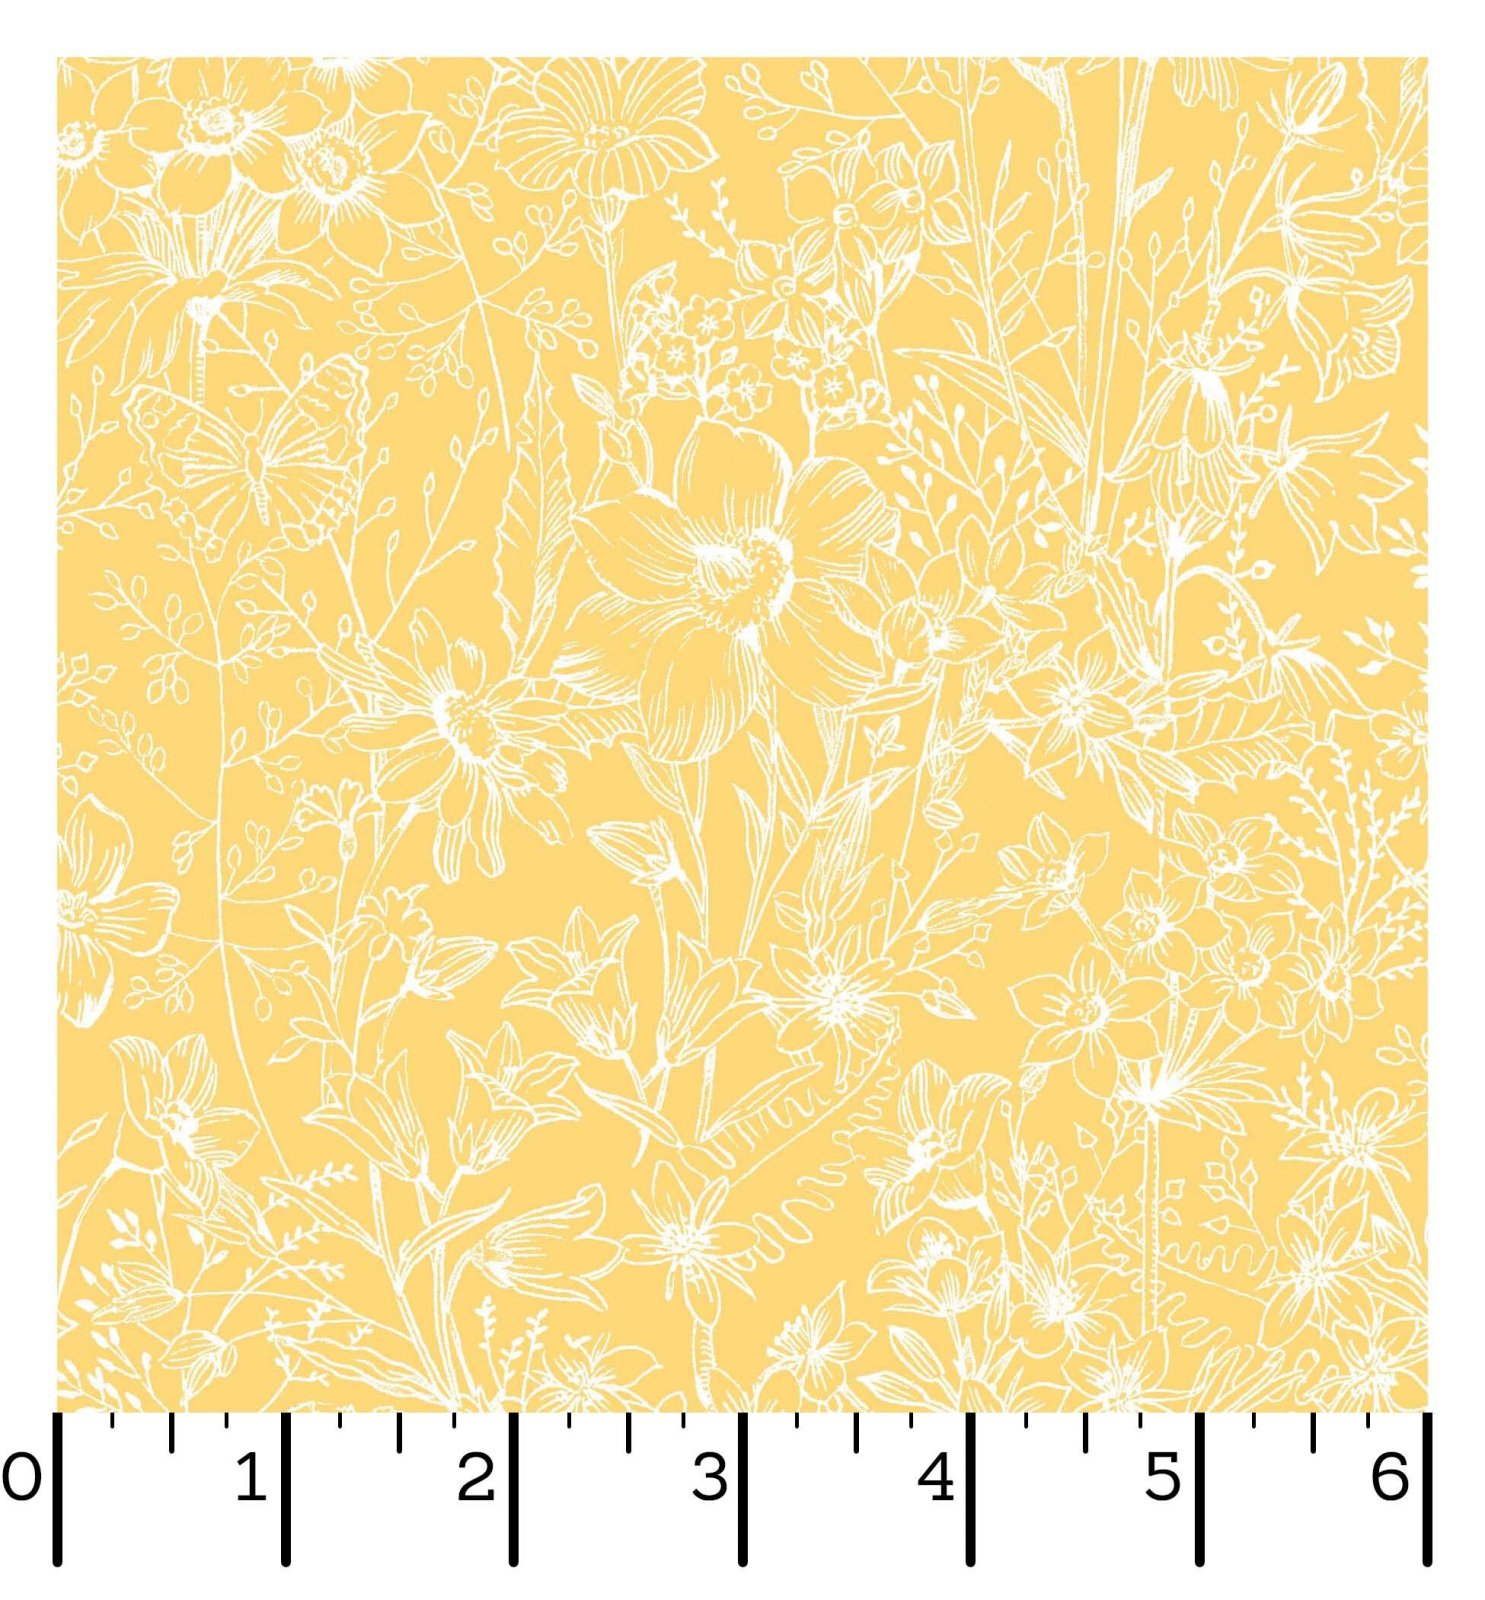 EESC-D10006 S - MEADOW EDGE BY MAYWOOD STUDIO MEADOW TOILE YELLOW - ARRIVING IN MAY 2021